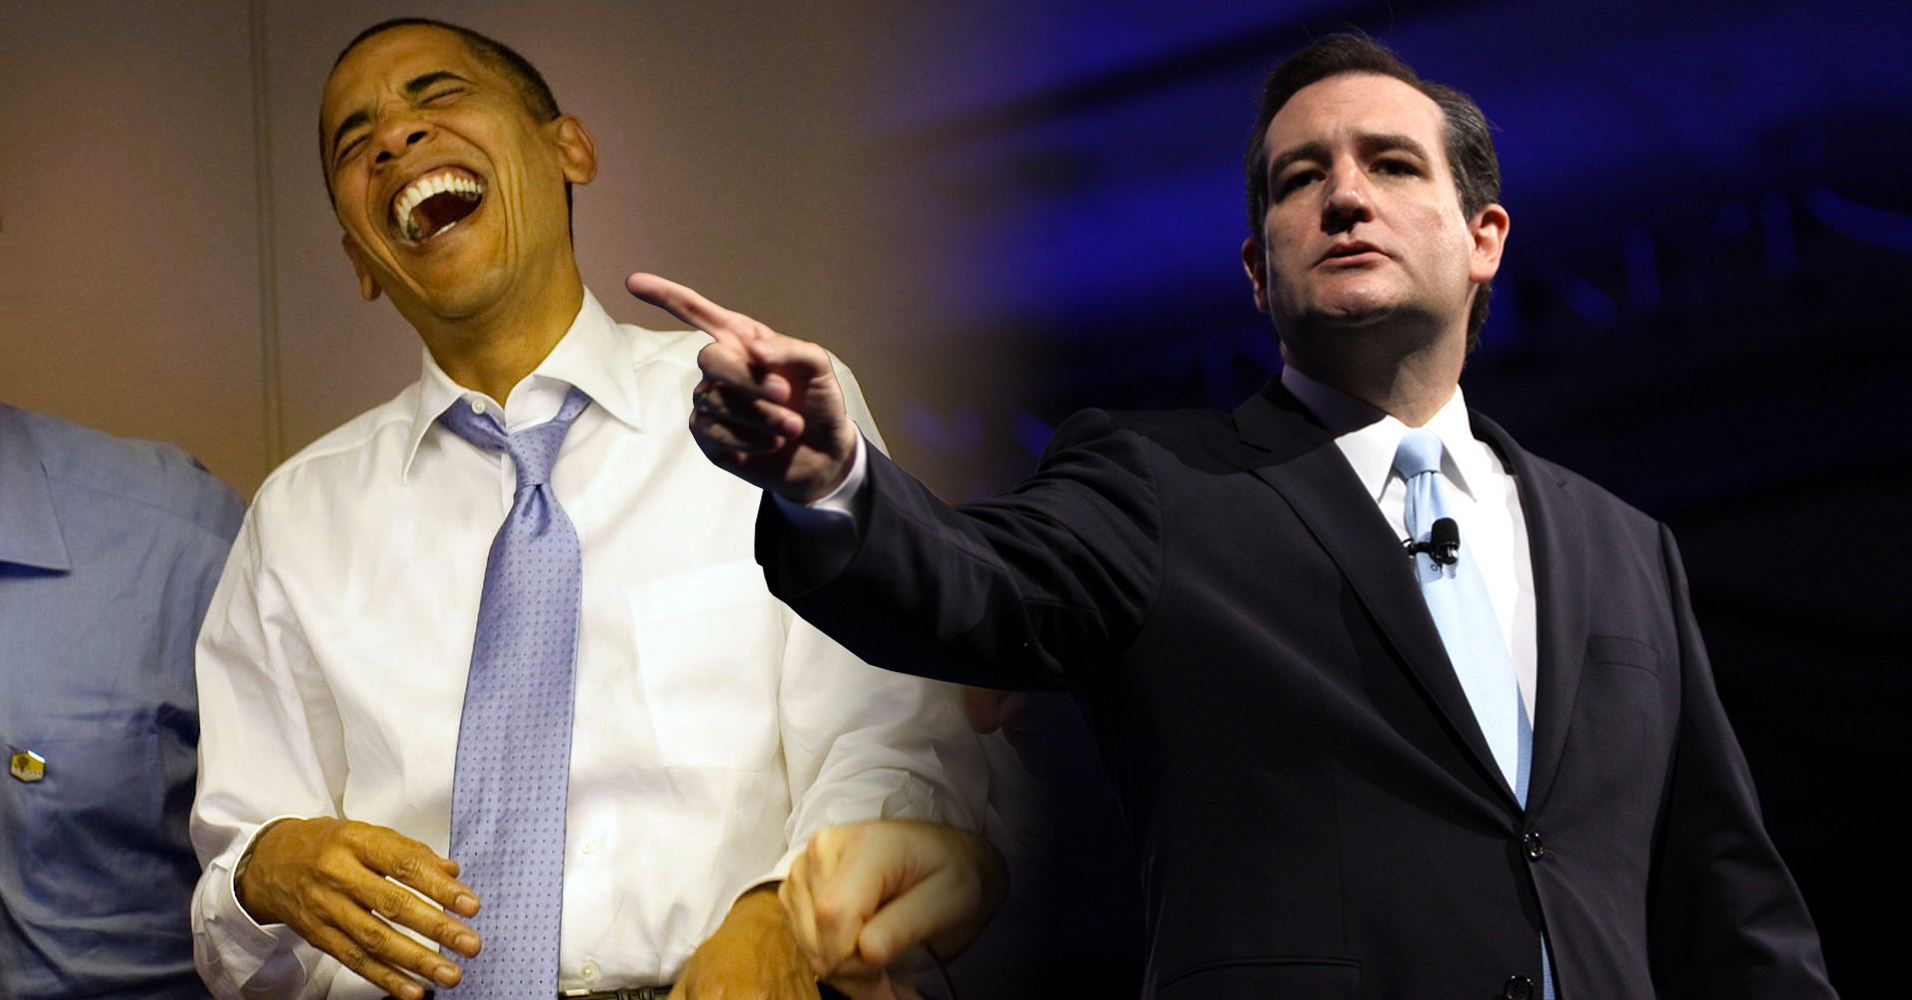 Ted Cruz Accidentally Saves The Day For Obama's Immigration Actions